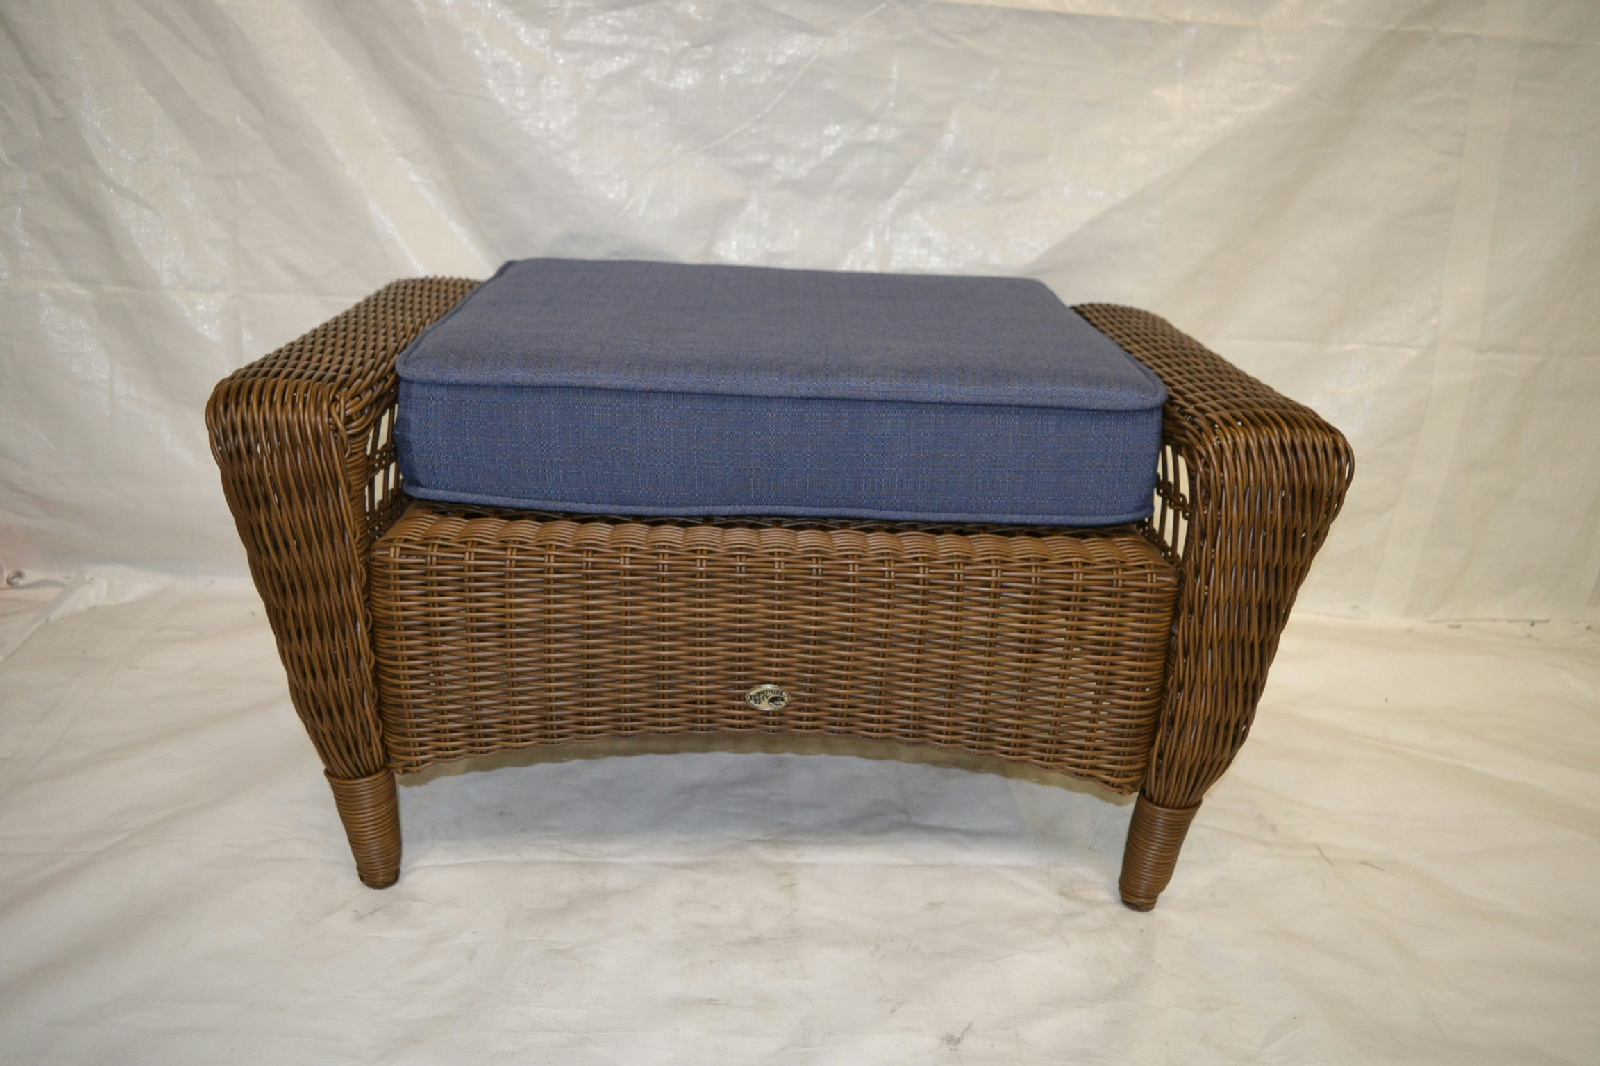 spring haven brown all weather wicker patio sofa cappuccino finish half moon console entry table ottoman with